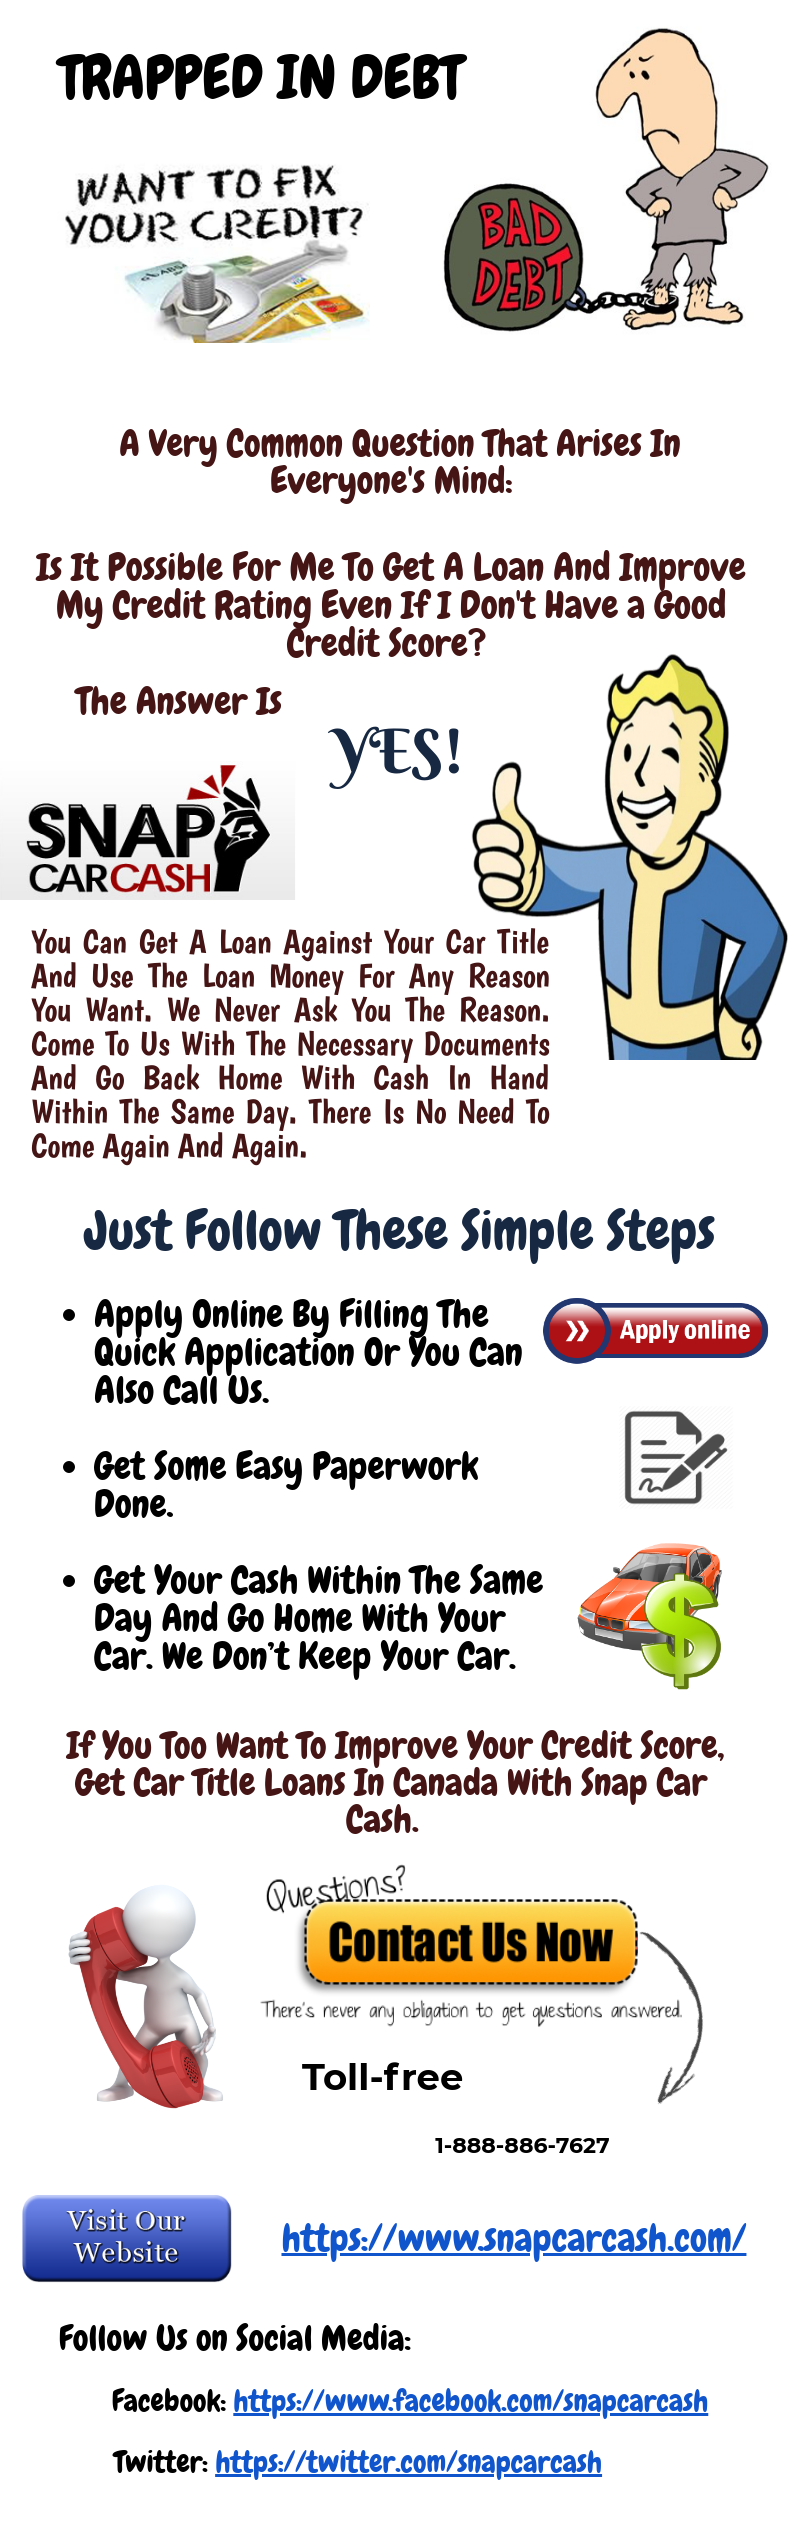 Castle payday installment loans image 9